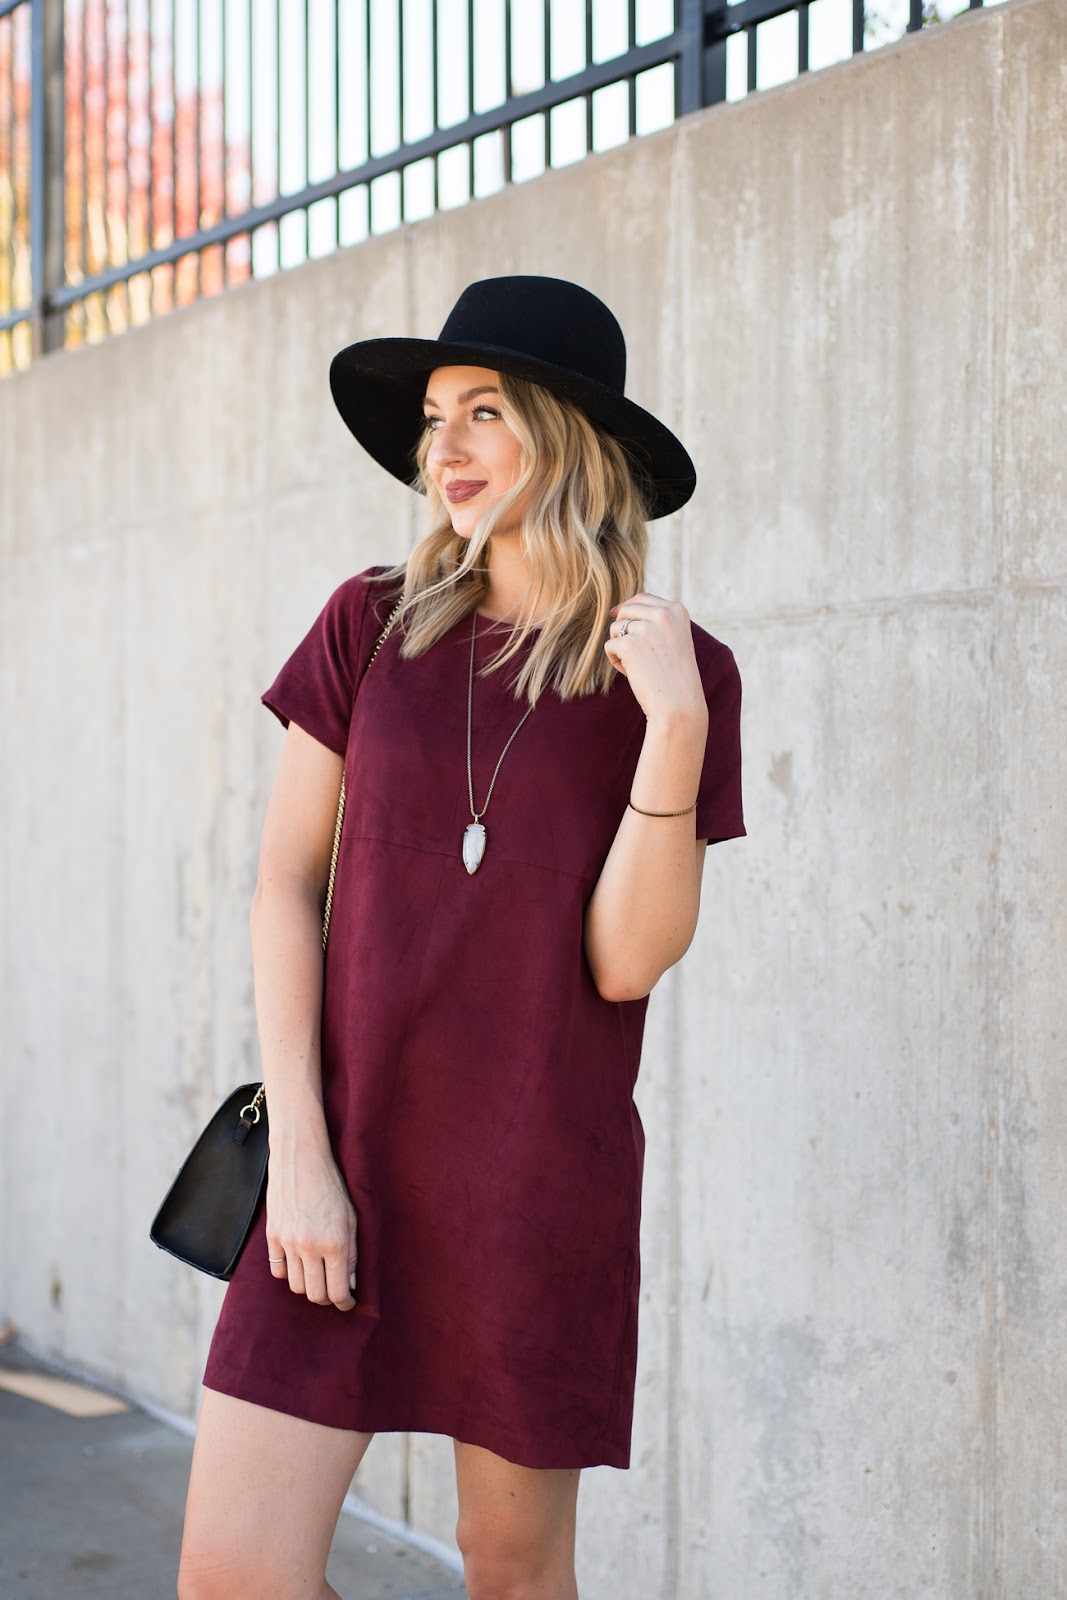 Suede dress for fall